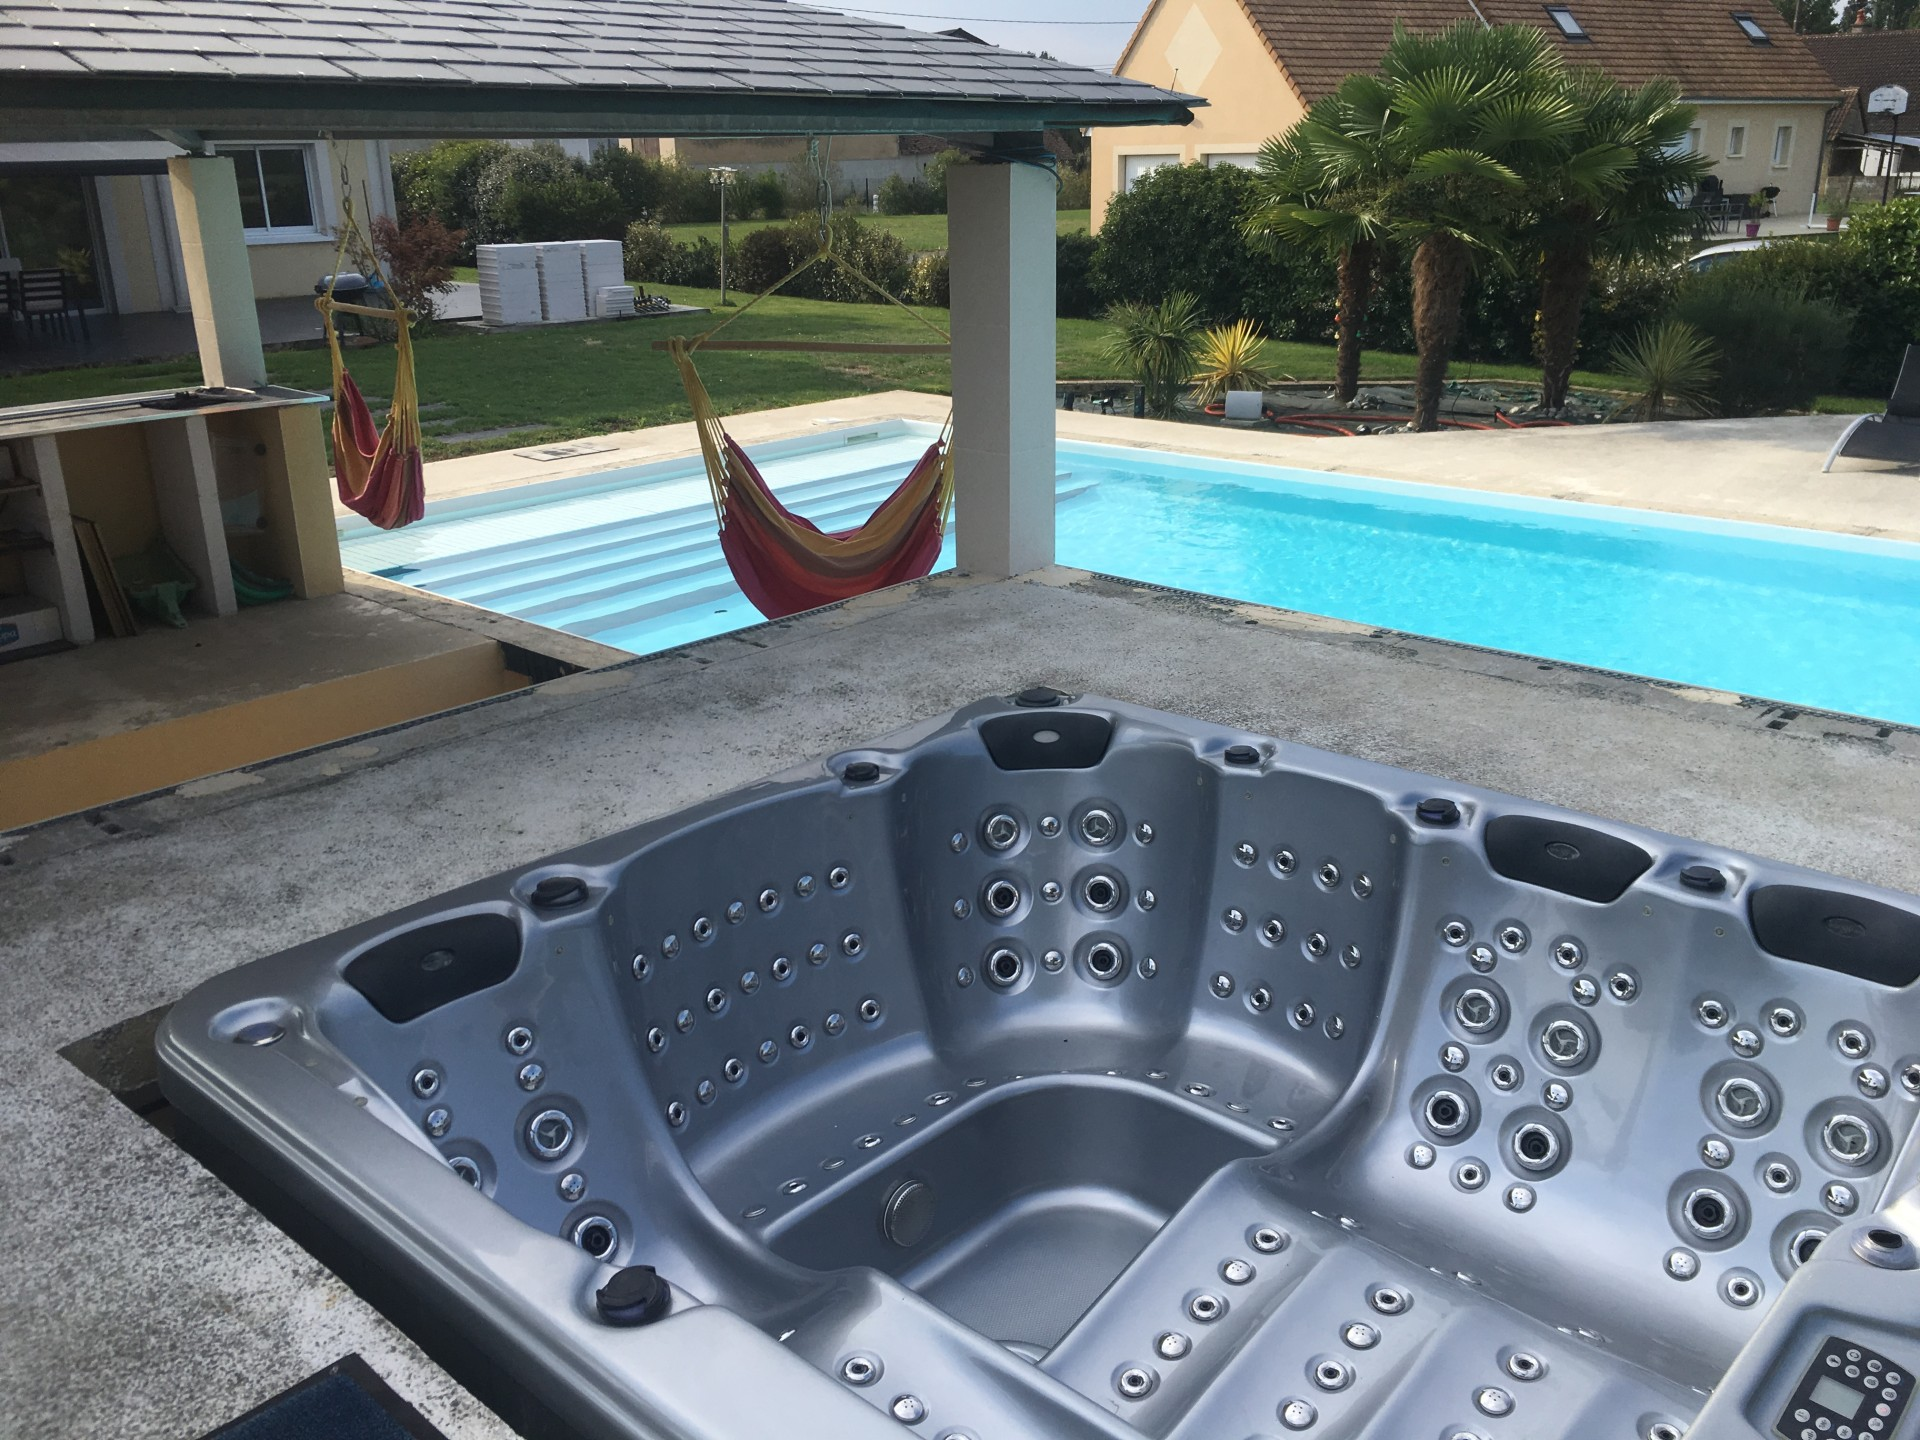 jacuzzi_le_mans_cottage_24h_race